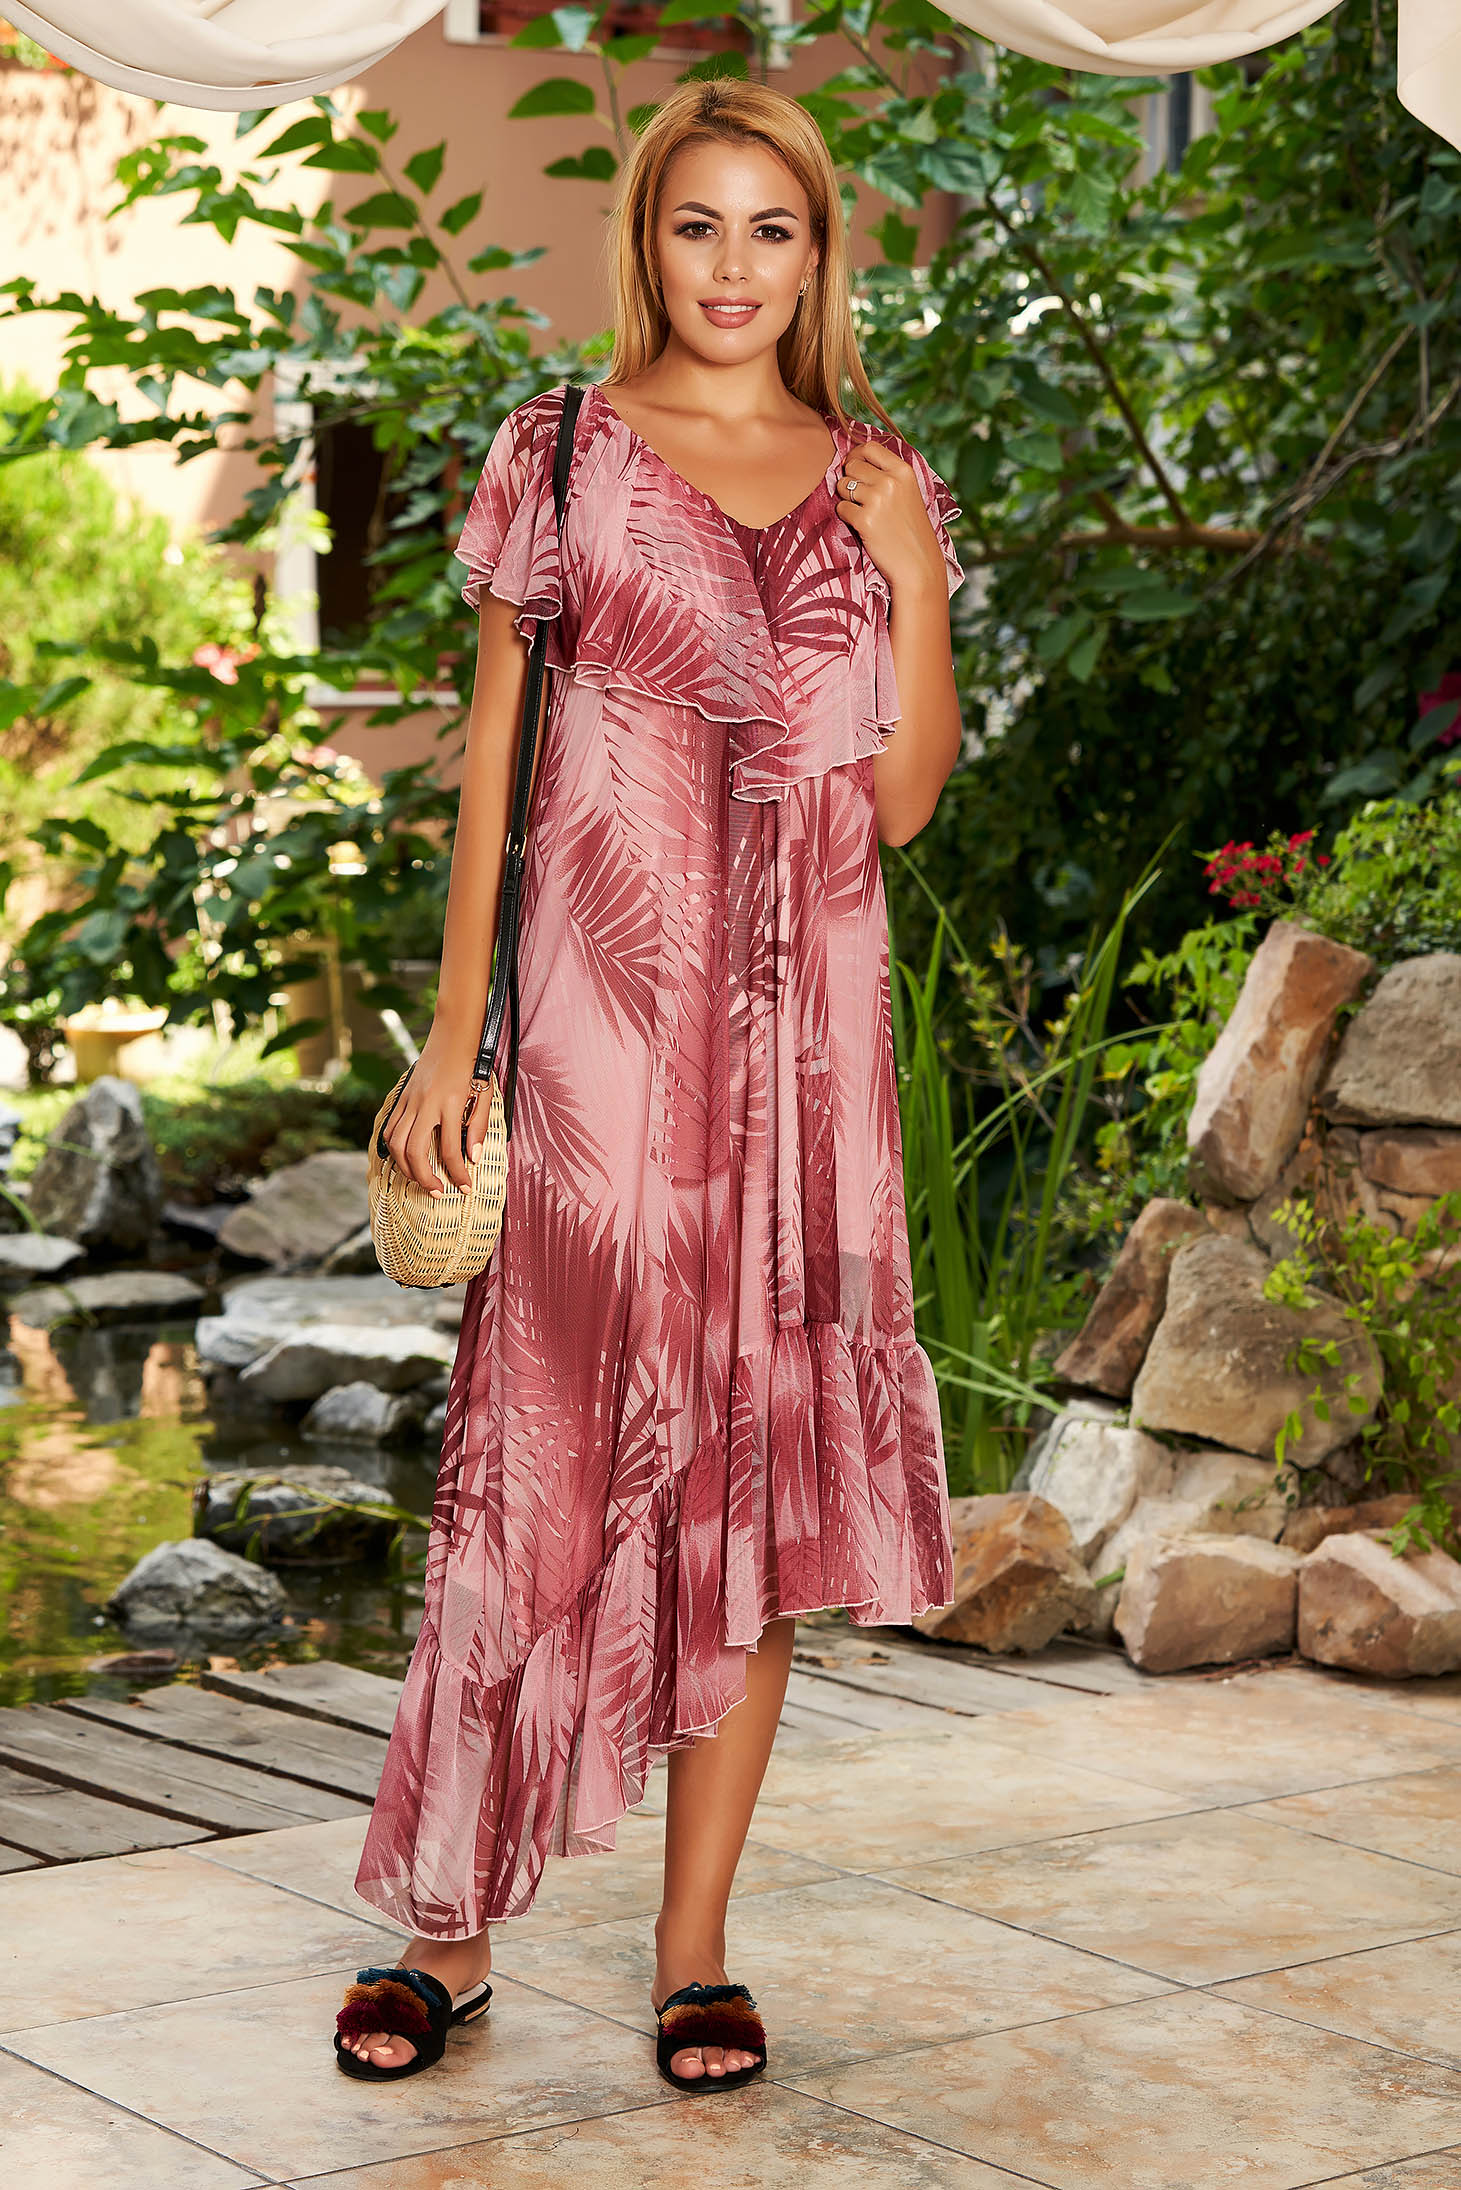 StarShinerS burgundy dress daily midi asymmetrical flared laced frilly trim around cleavage line